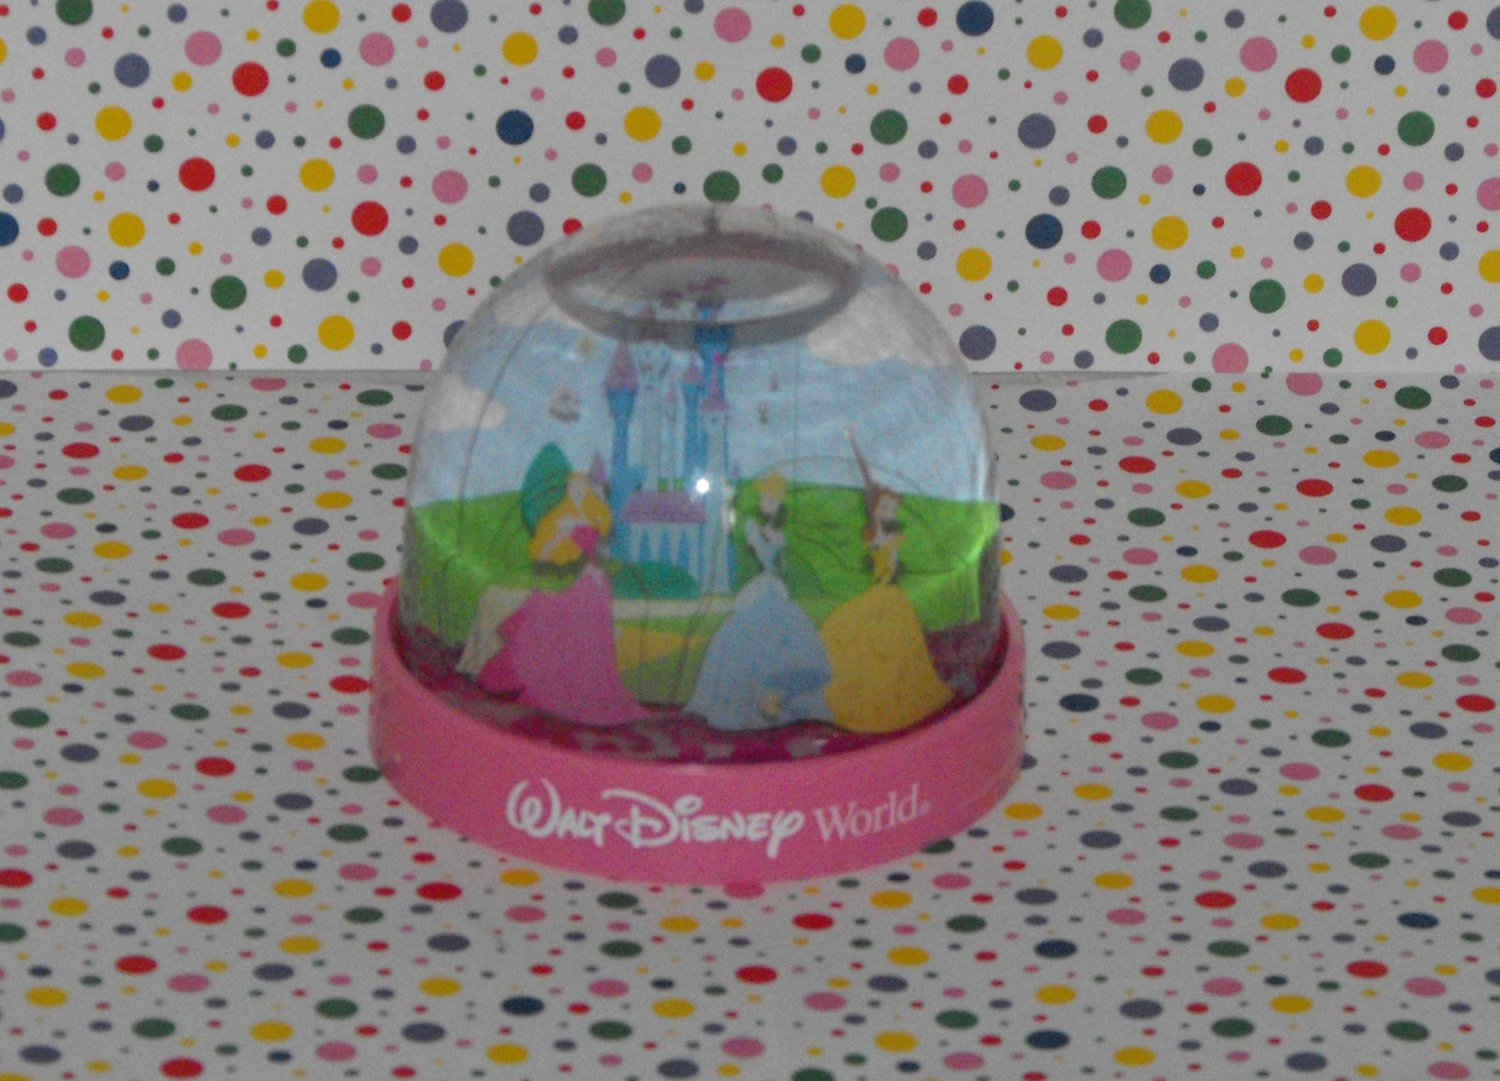 *SOLD~Awaiting Feedback~Walt Disney World Disney Princesses Snow Globe